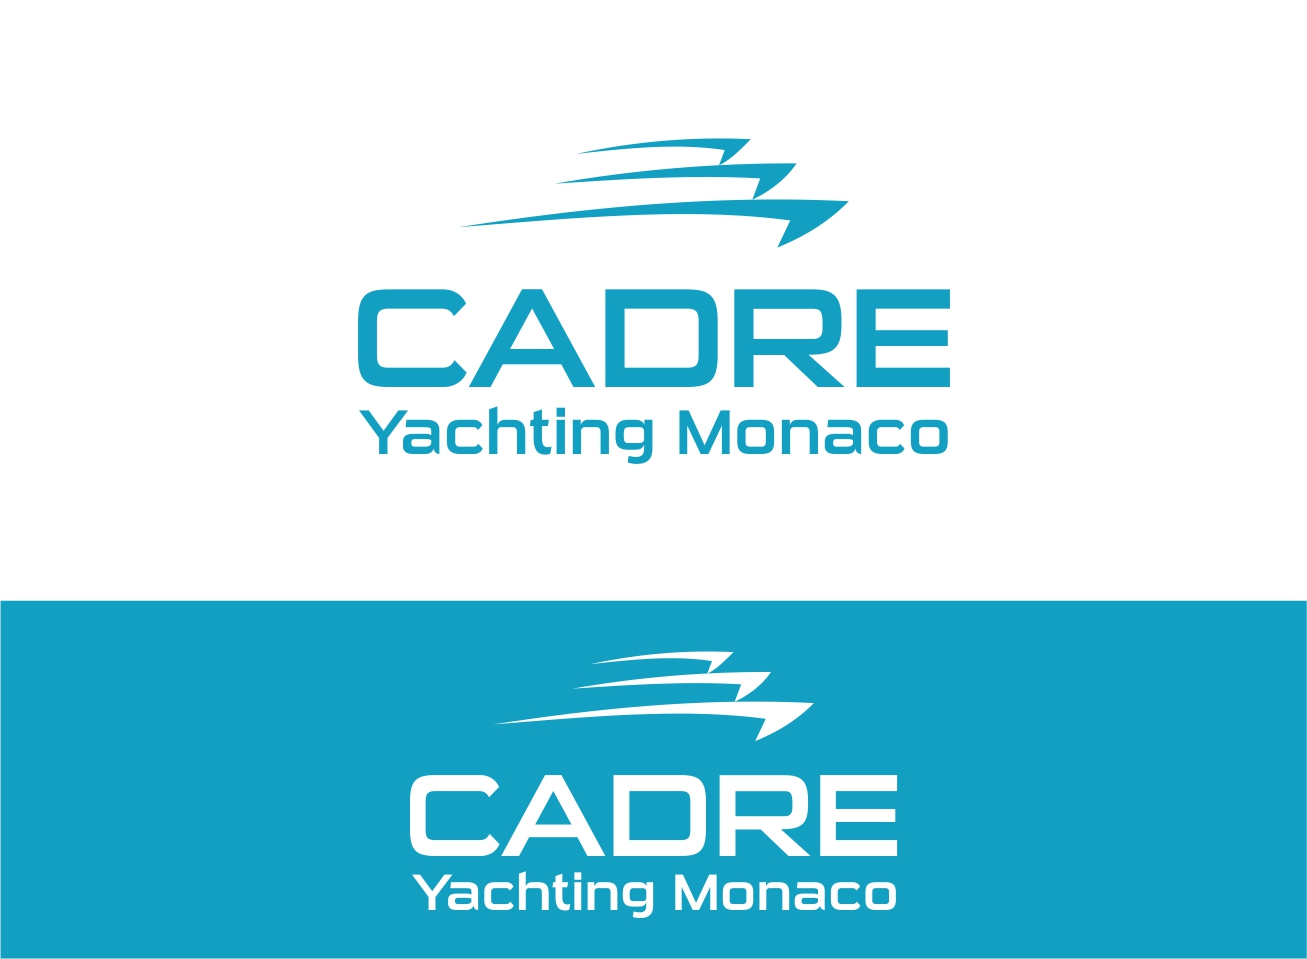 Logo Design by dzoker - Entry No. 144 in the Logo Design Contest New Logo Design for Cadre Yachting Monaco.